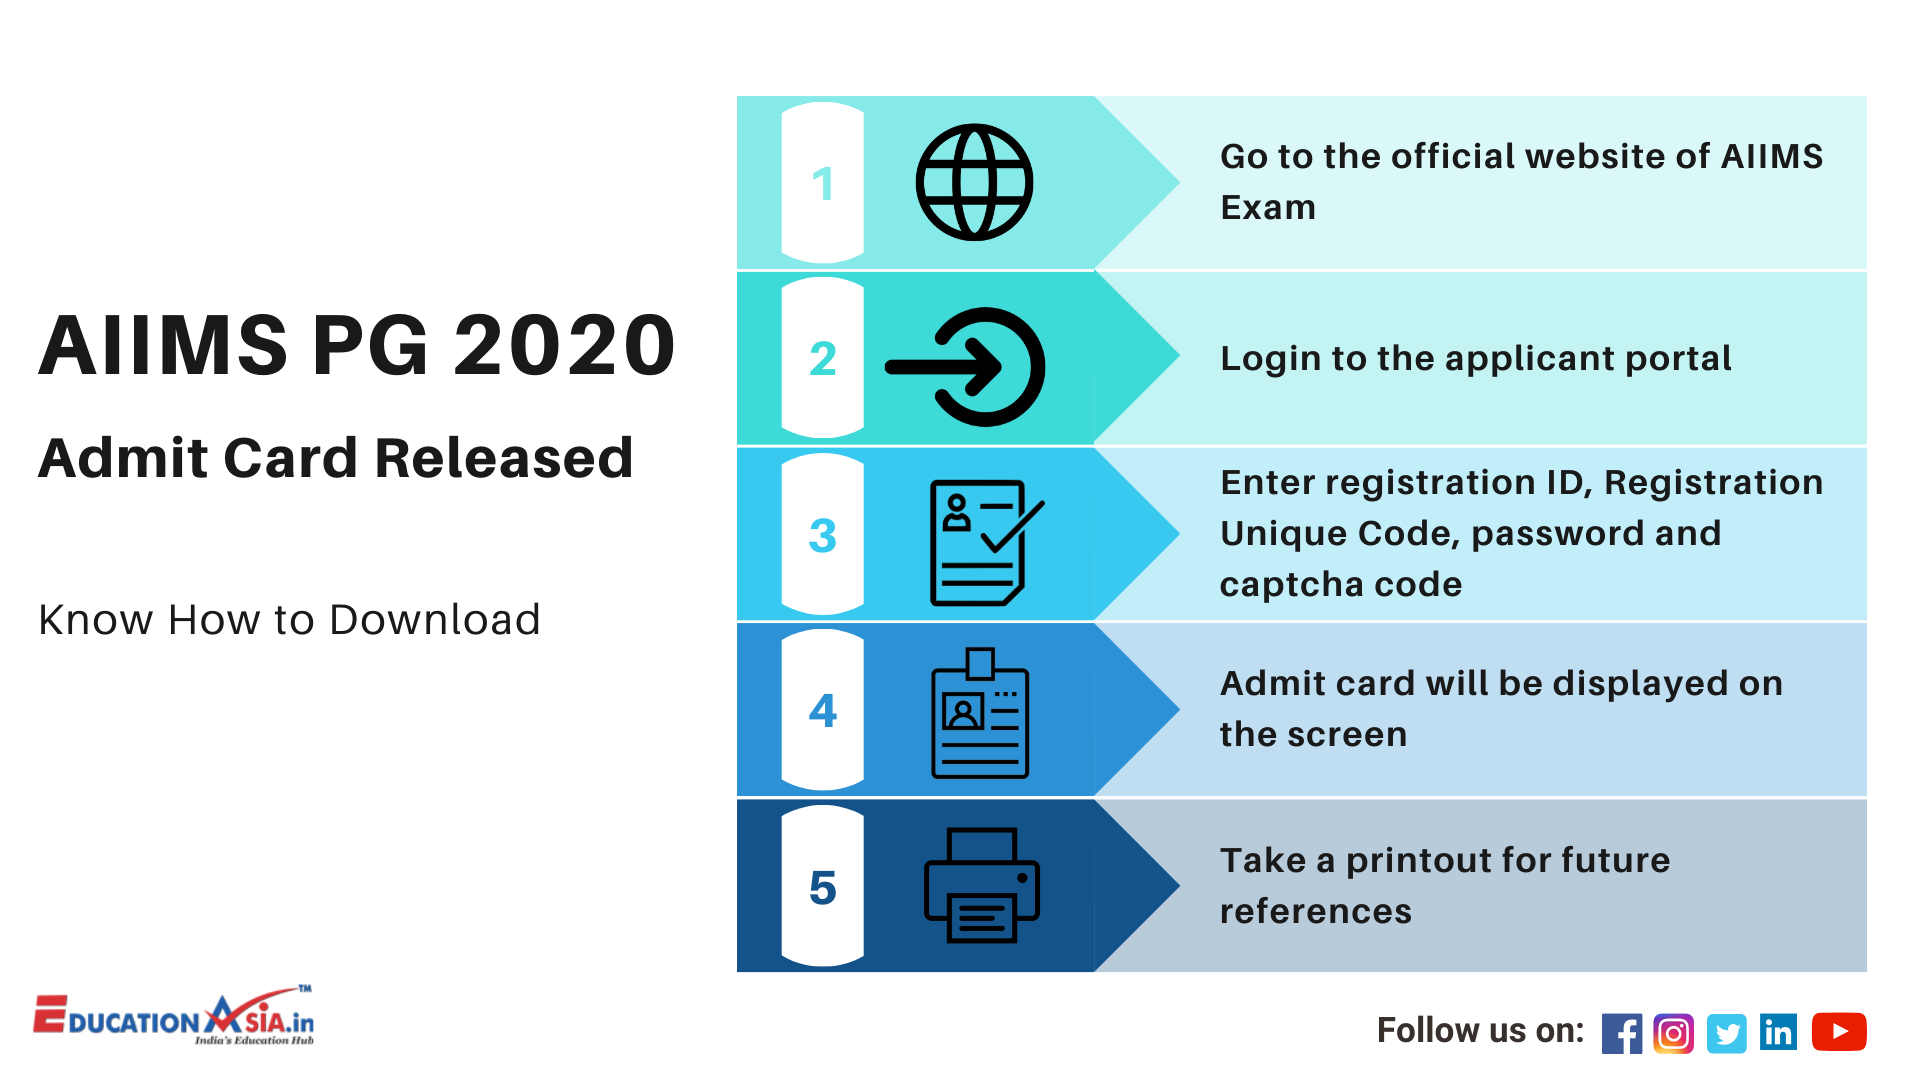 AIIMS PG 2020 in 2020 Cards, Release, Education related